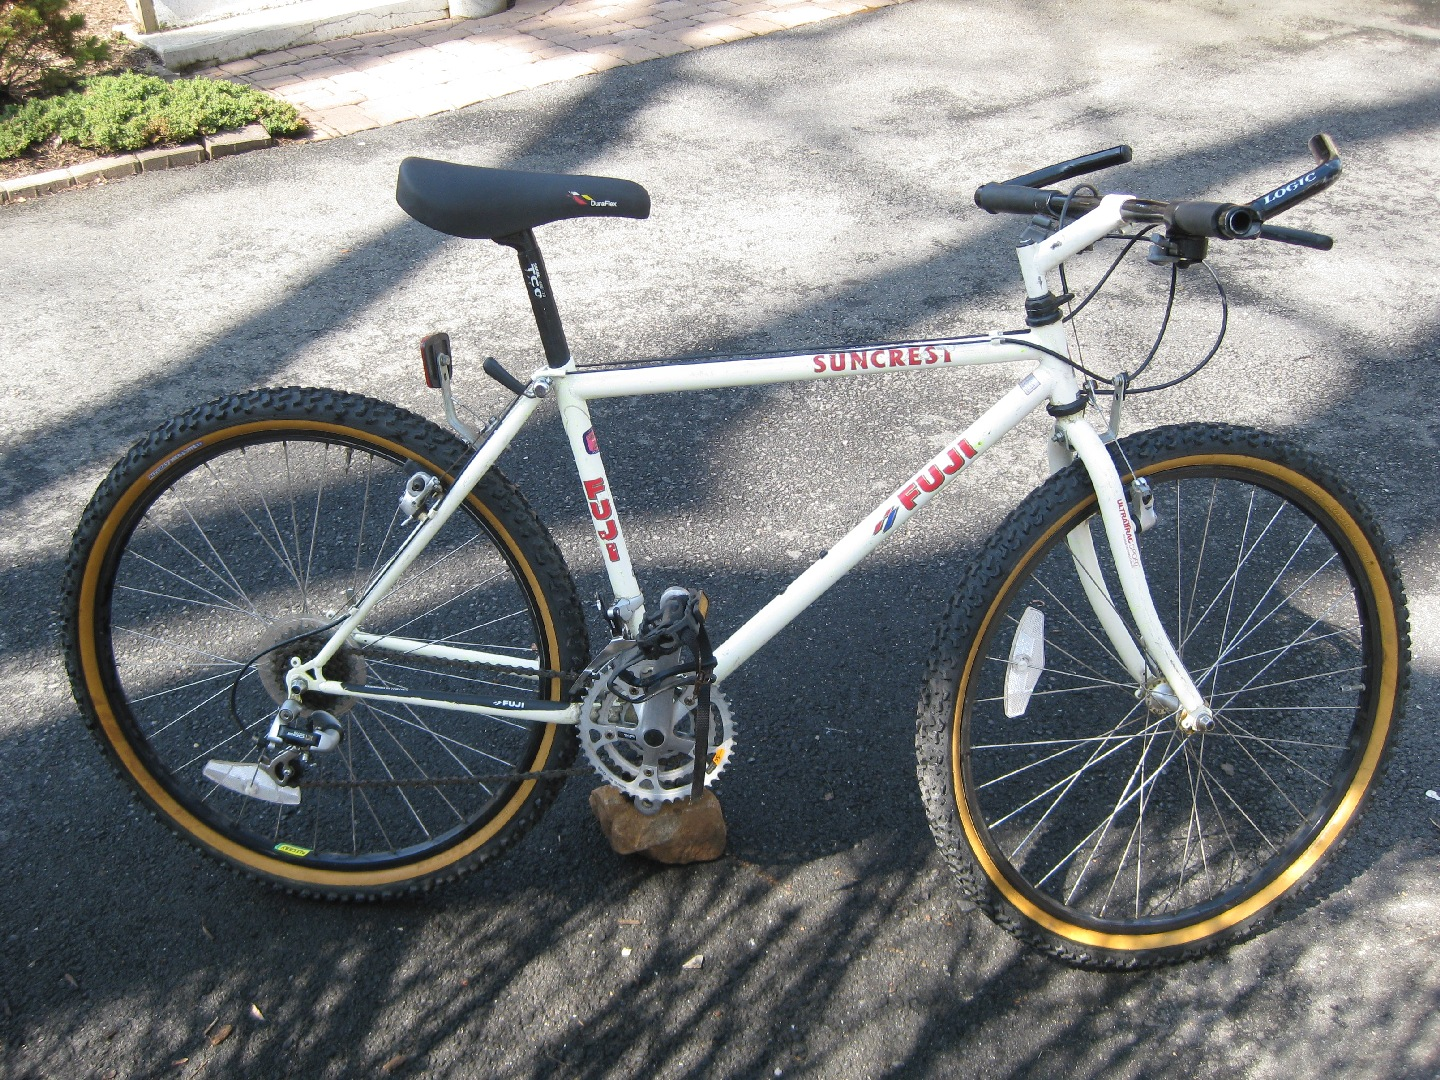 Fuji Suncrest Bike